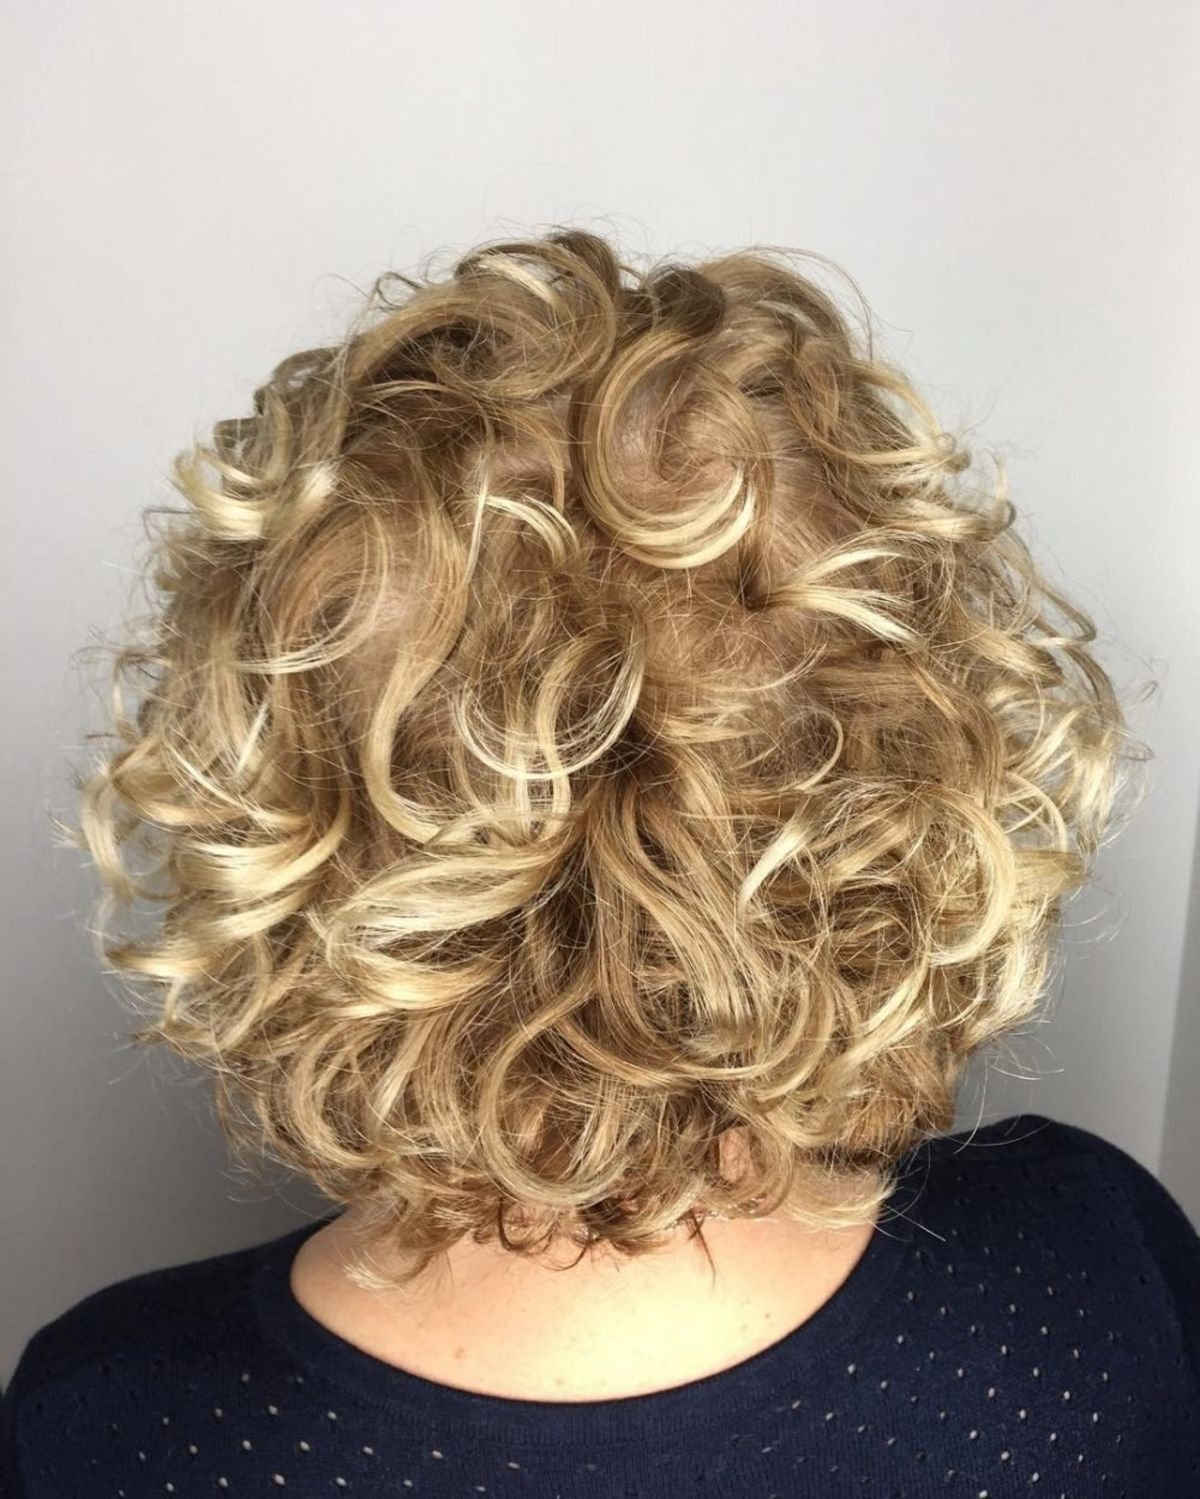 17 Modern Perm Hair Ideas That Are Starting to Trend Right Now